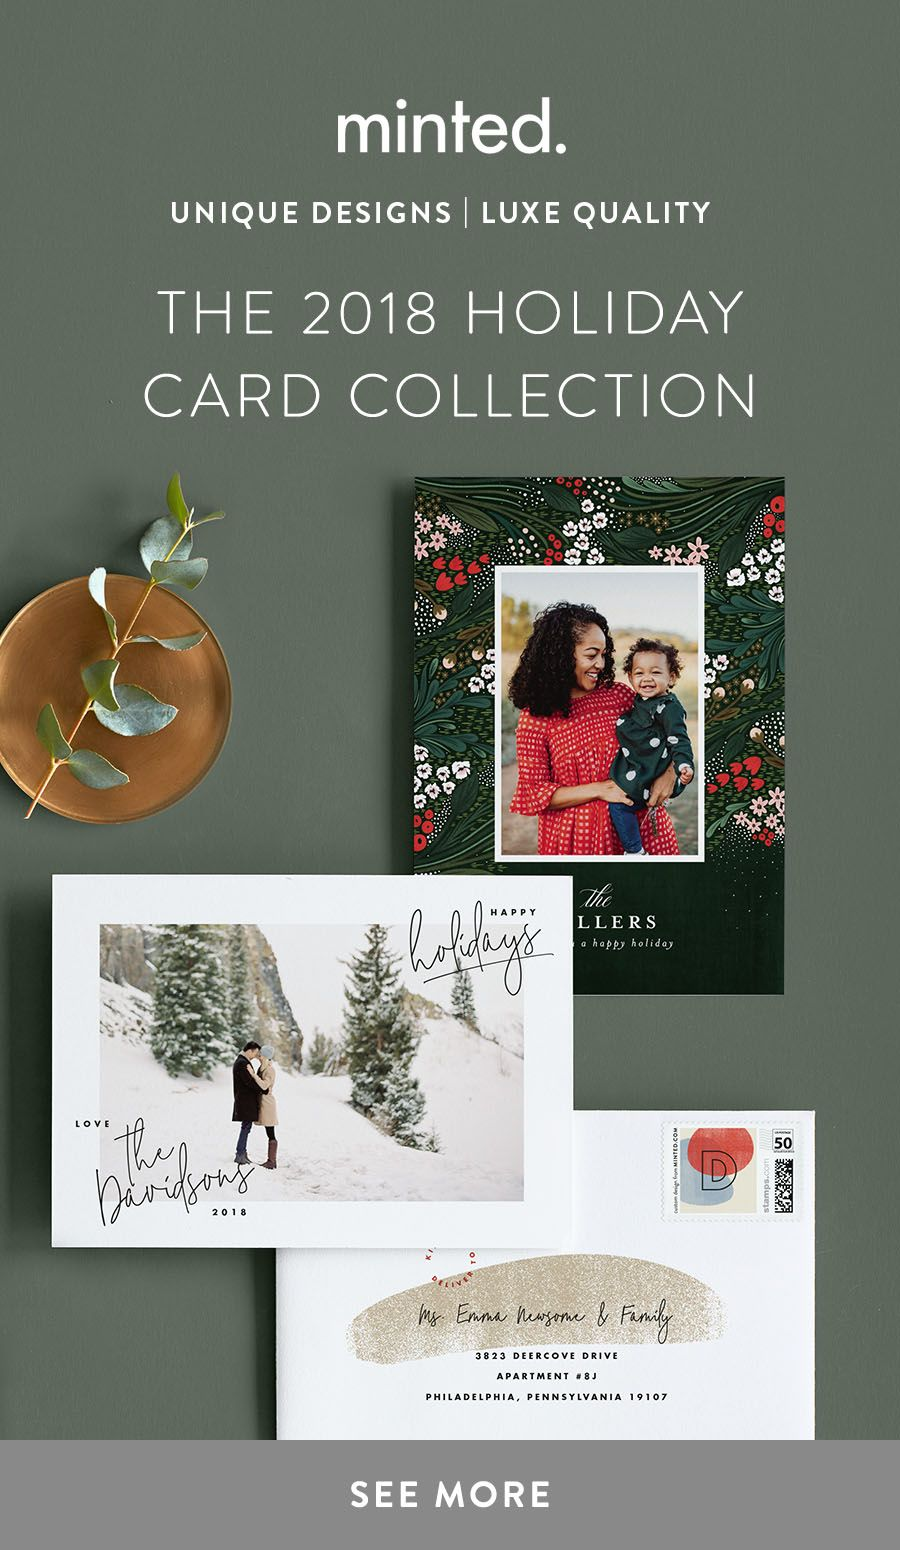 Today Only Enjoy 25 Off New Year And Holiday Cards With Your First Minted Purchase Unique Designed By Independent Artists